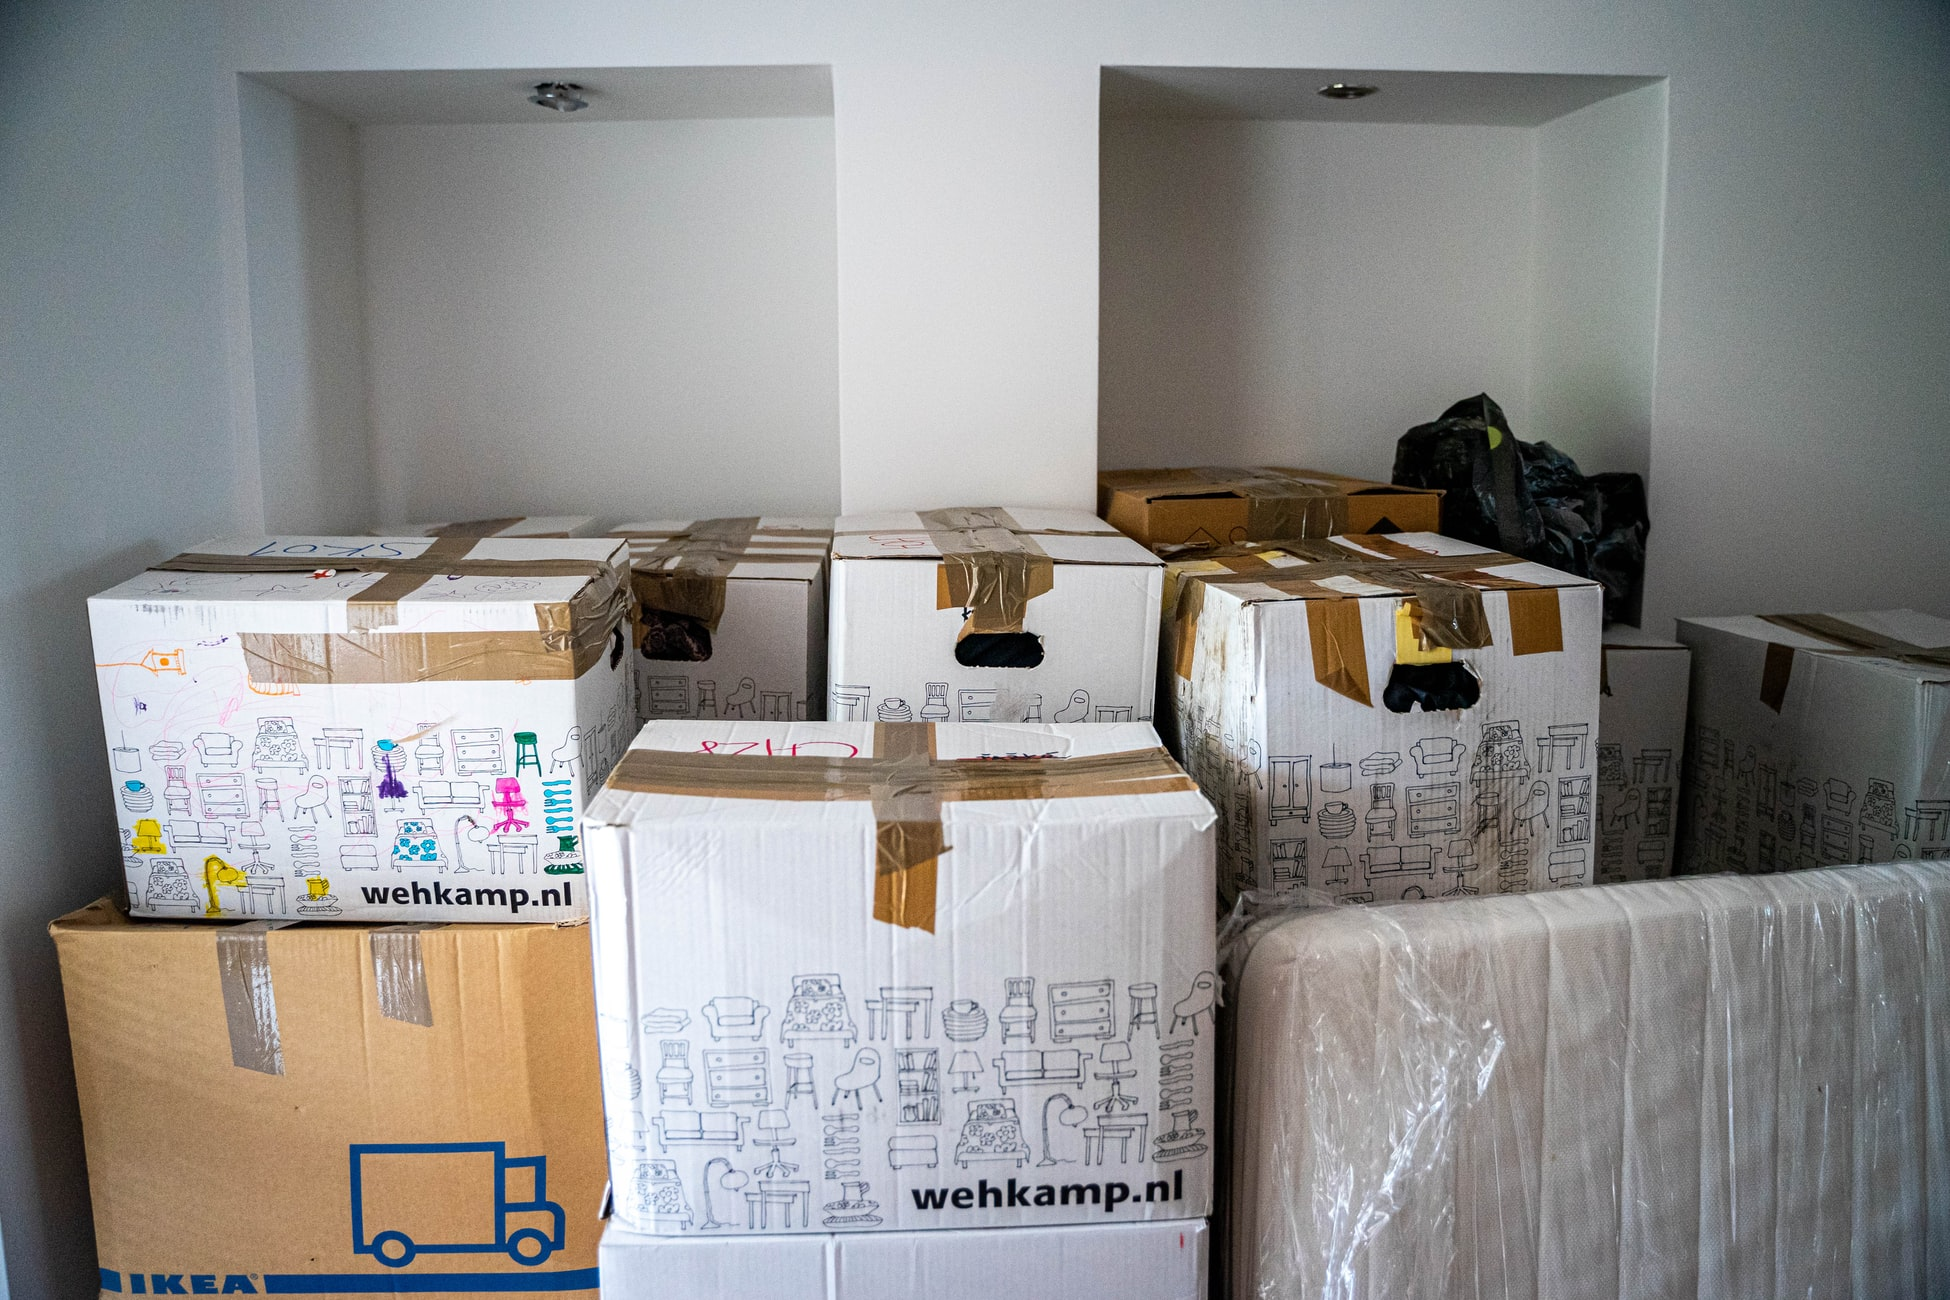 Boxes of items while moving into a new home